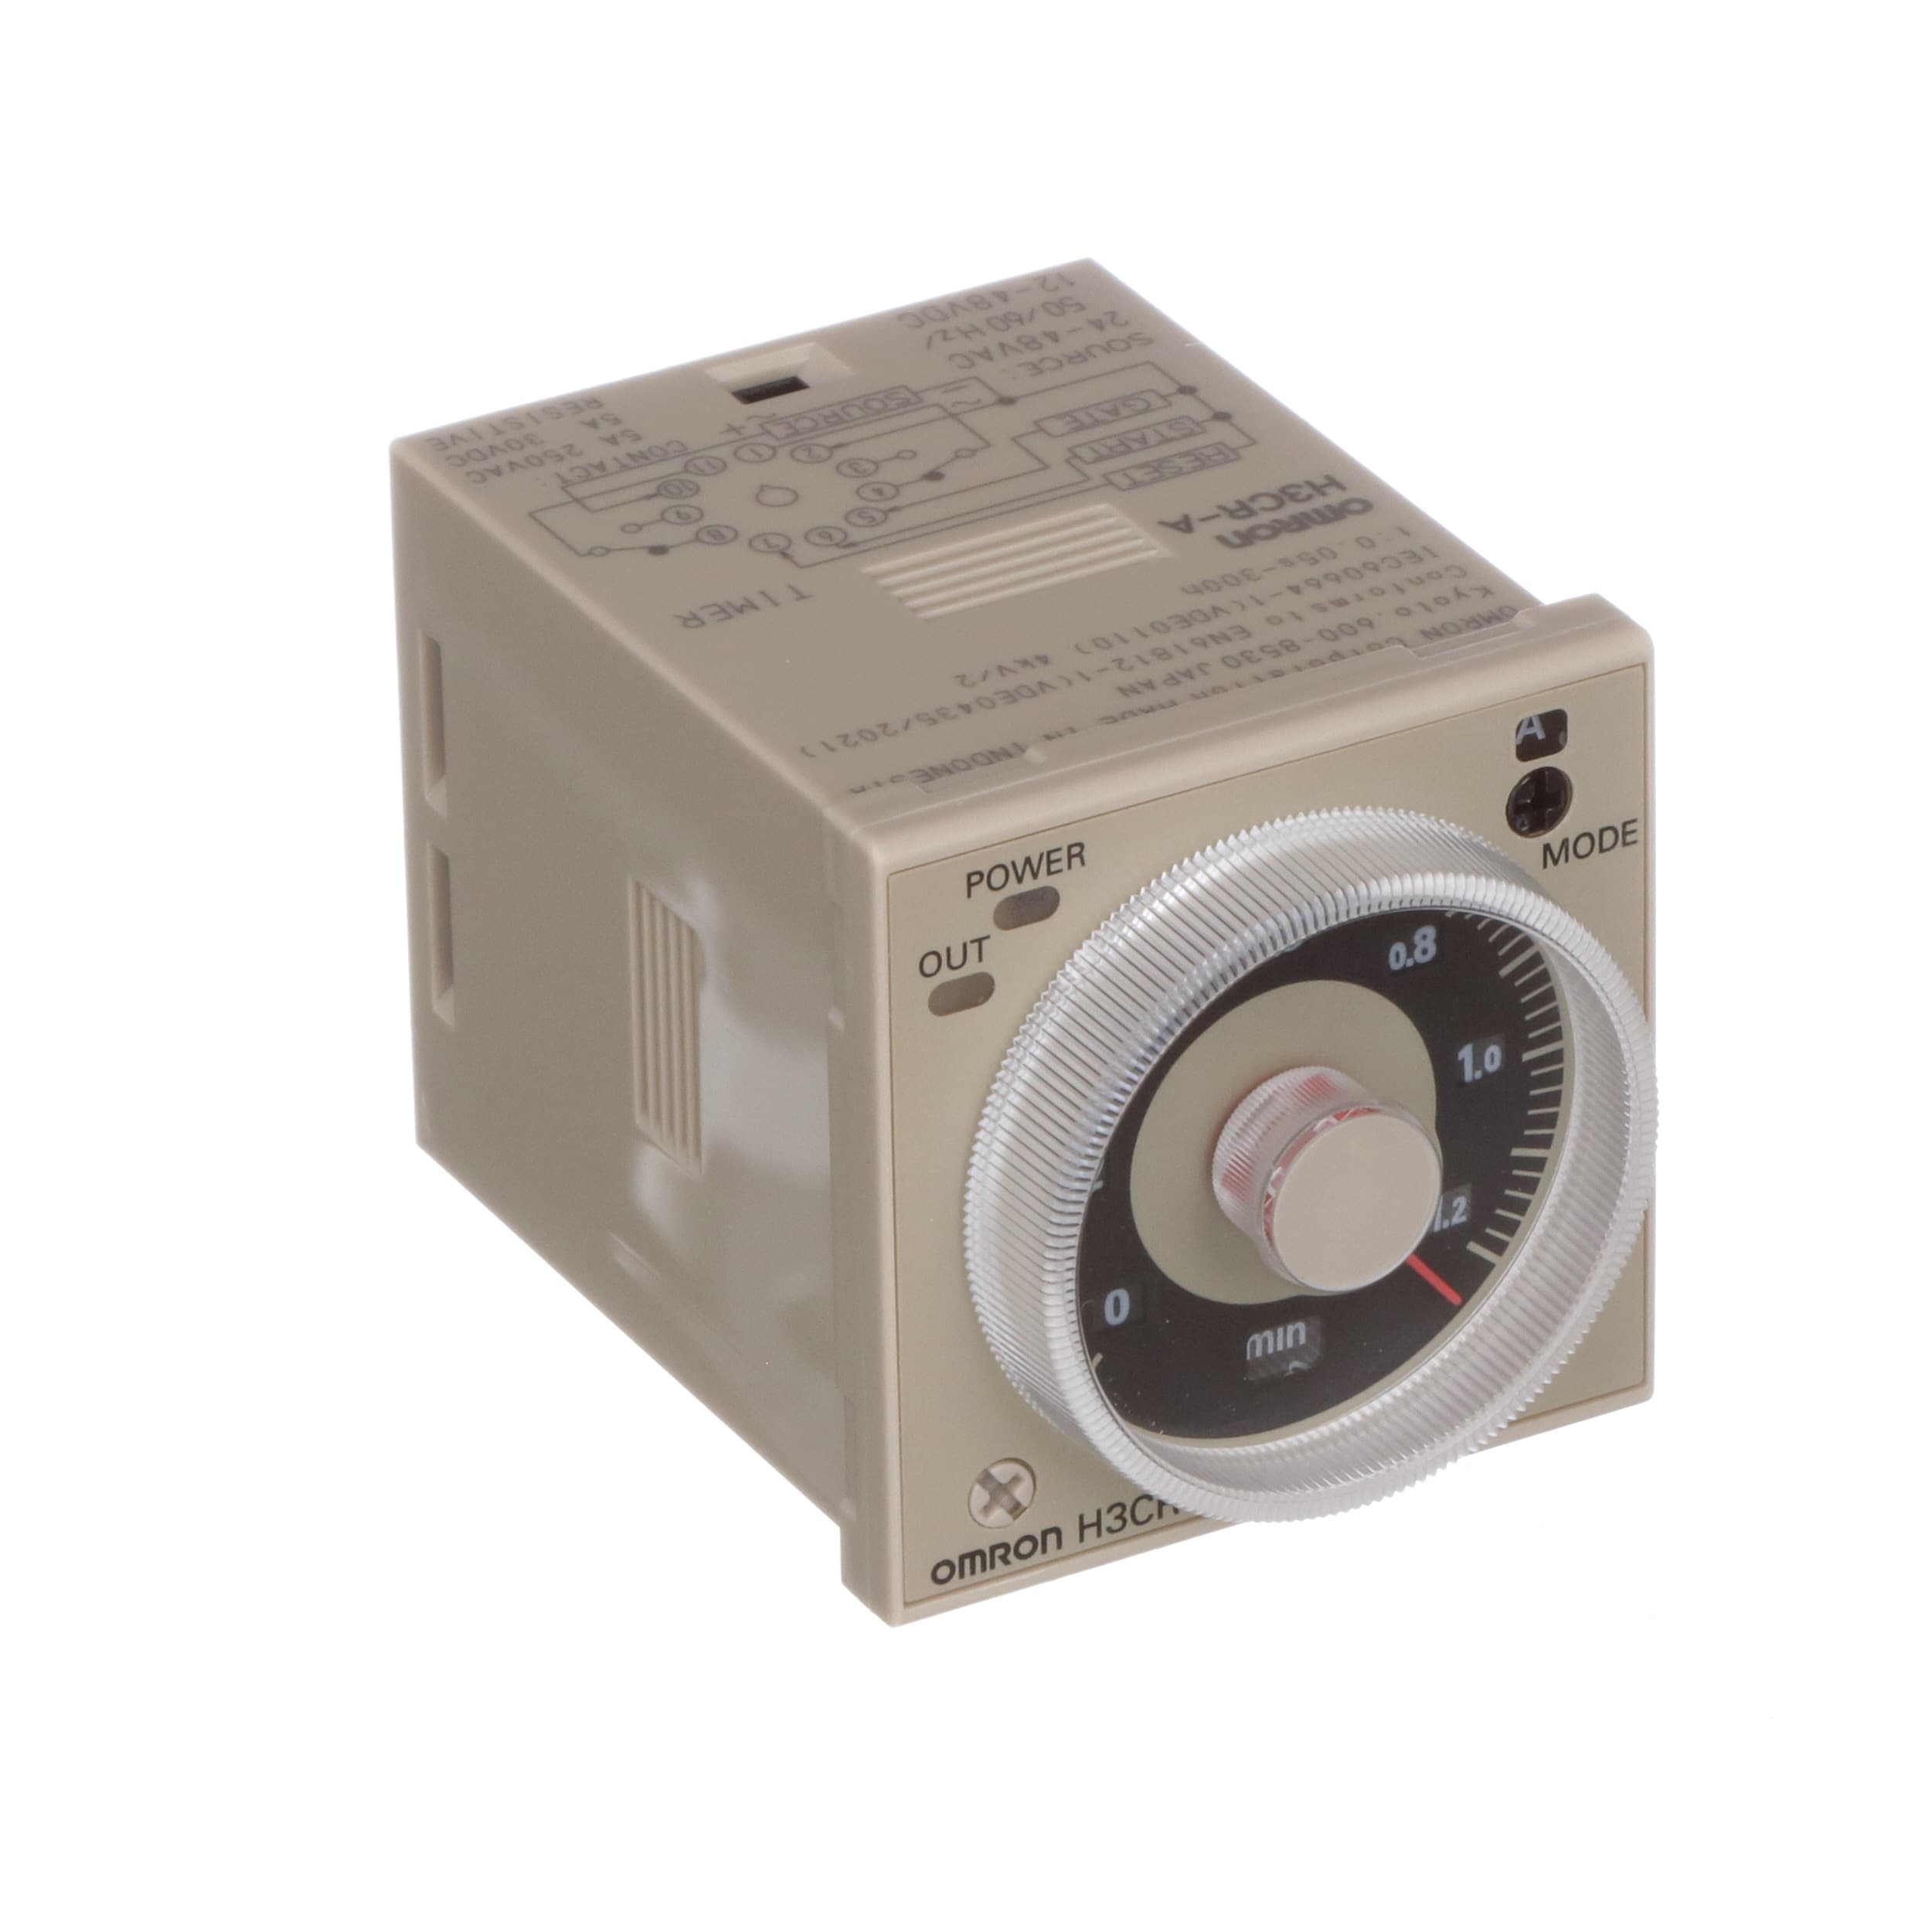 Omron Automation H3craac2448dc1248 Relay Ssr Timing On Delay Vdc Dip Reed All Electronics Corp Dpdt Cur Rtg 5 015a Ctrl V 24 48 12 48ac Dc 11 Pin Allied